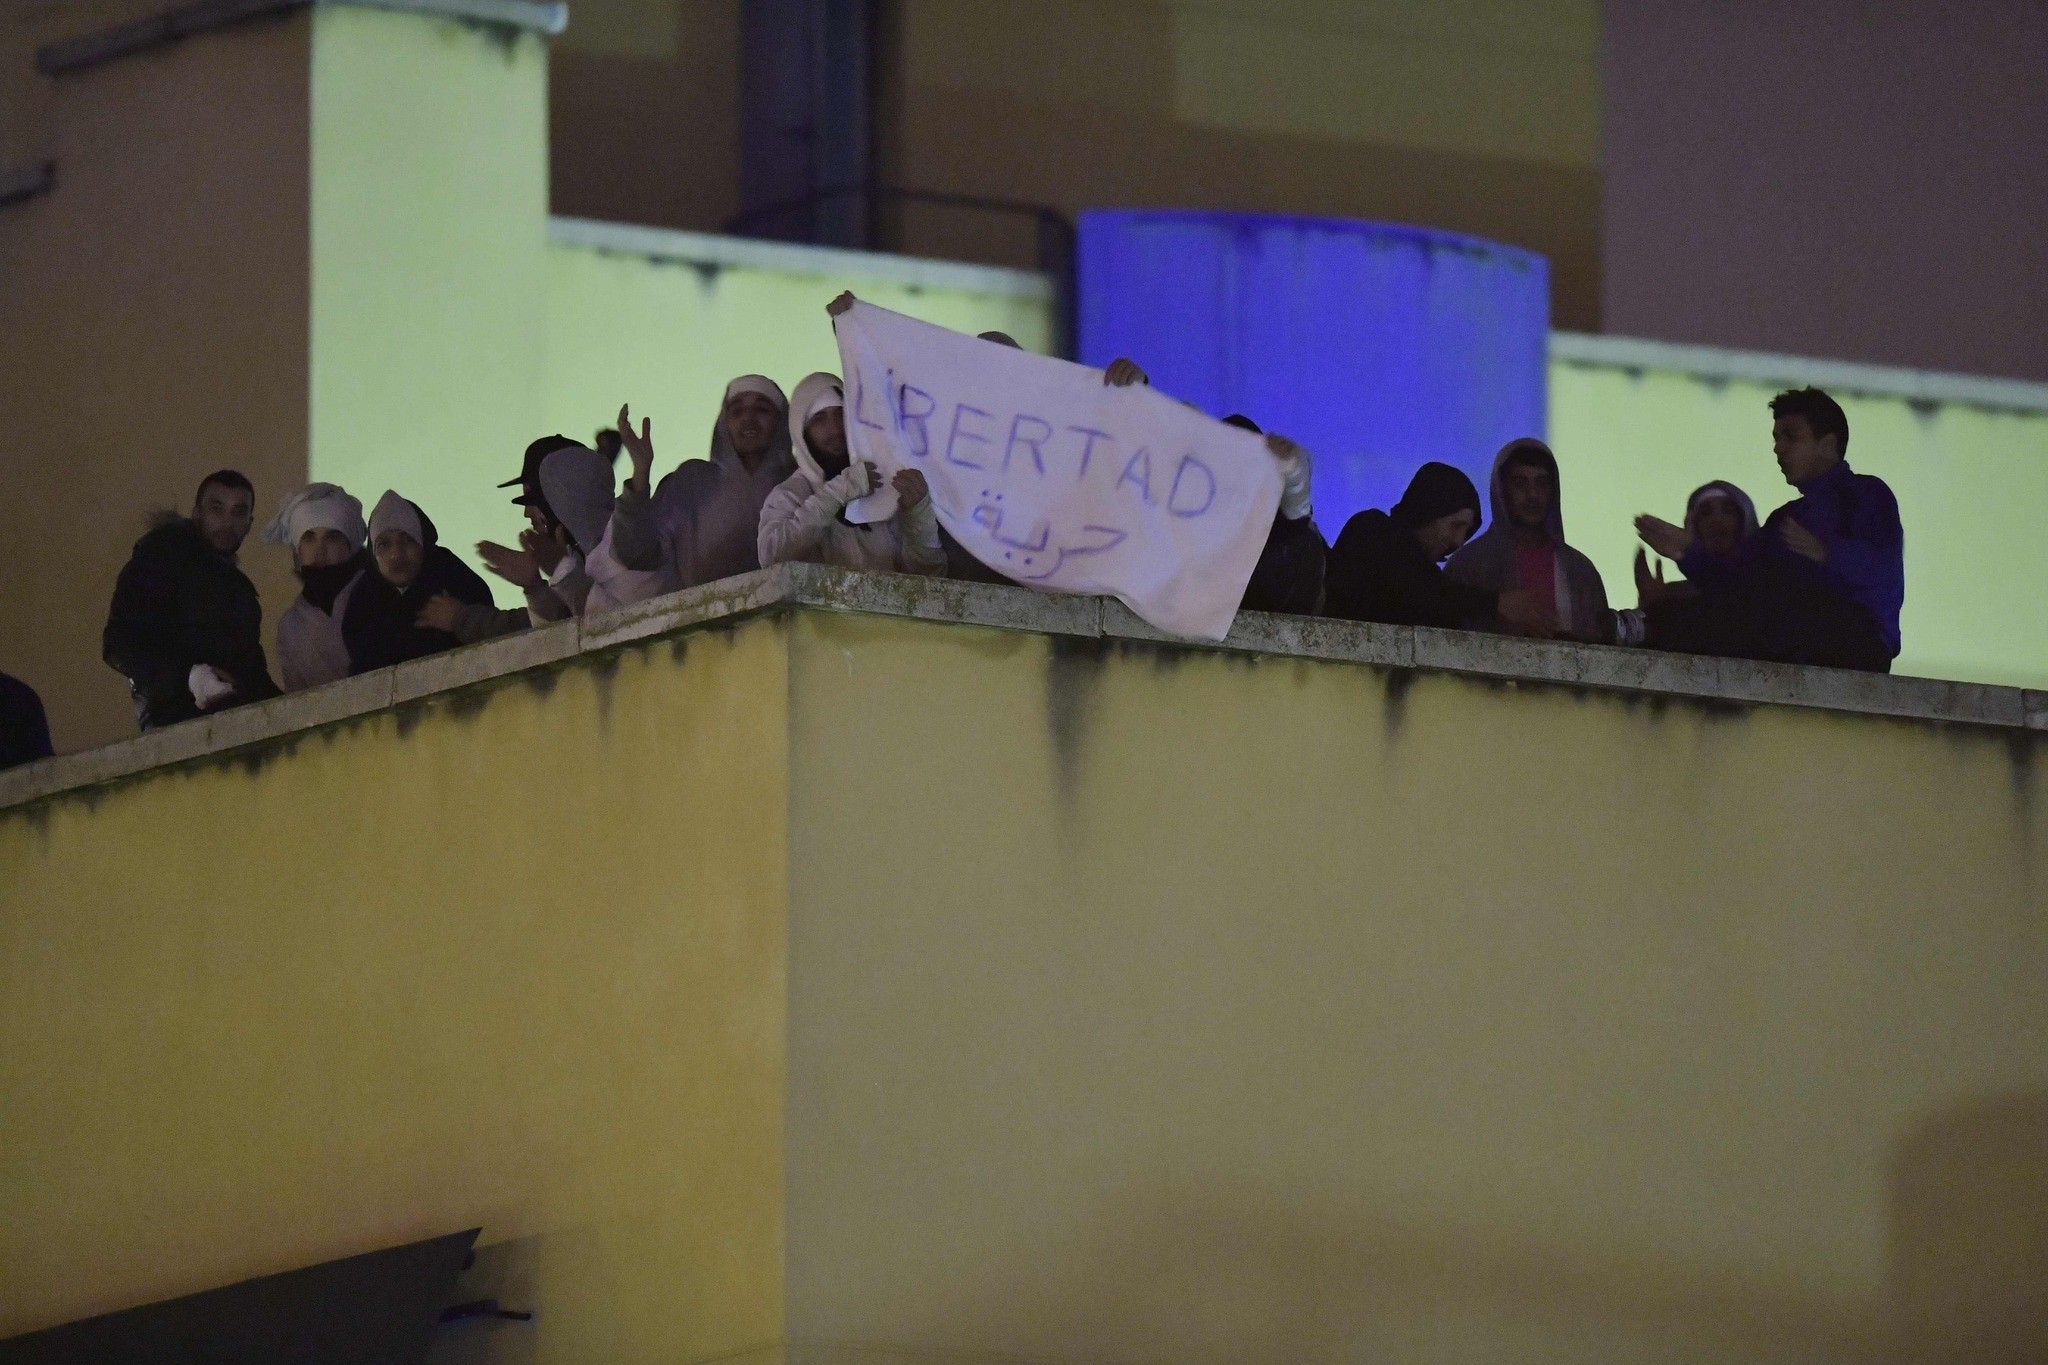 Refugees protest against the conditions in the detention center on the roof of the Immigration Detention Center (CIE),u00a0Oct.u00a019, 2016, Madrid. (AFP Photo)